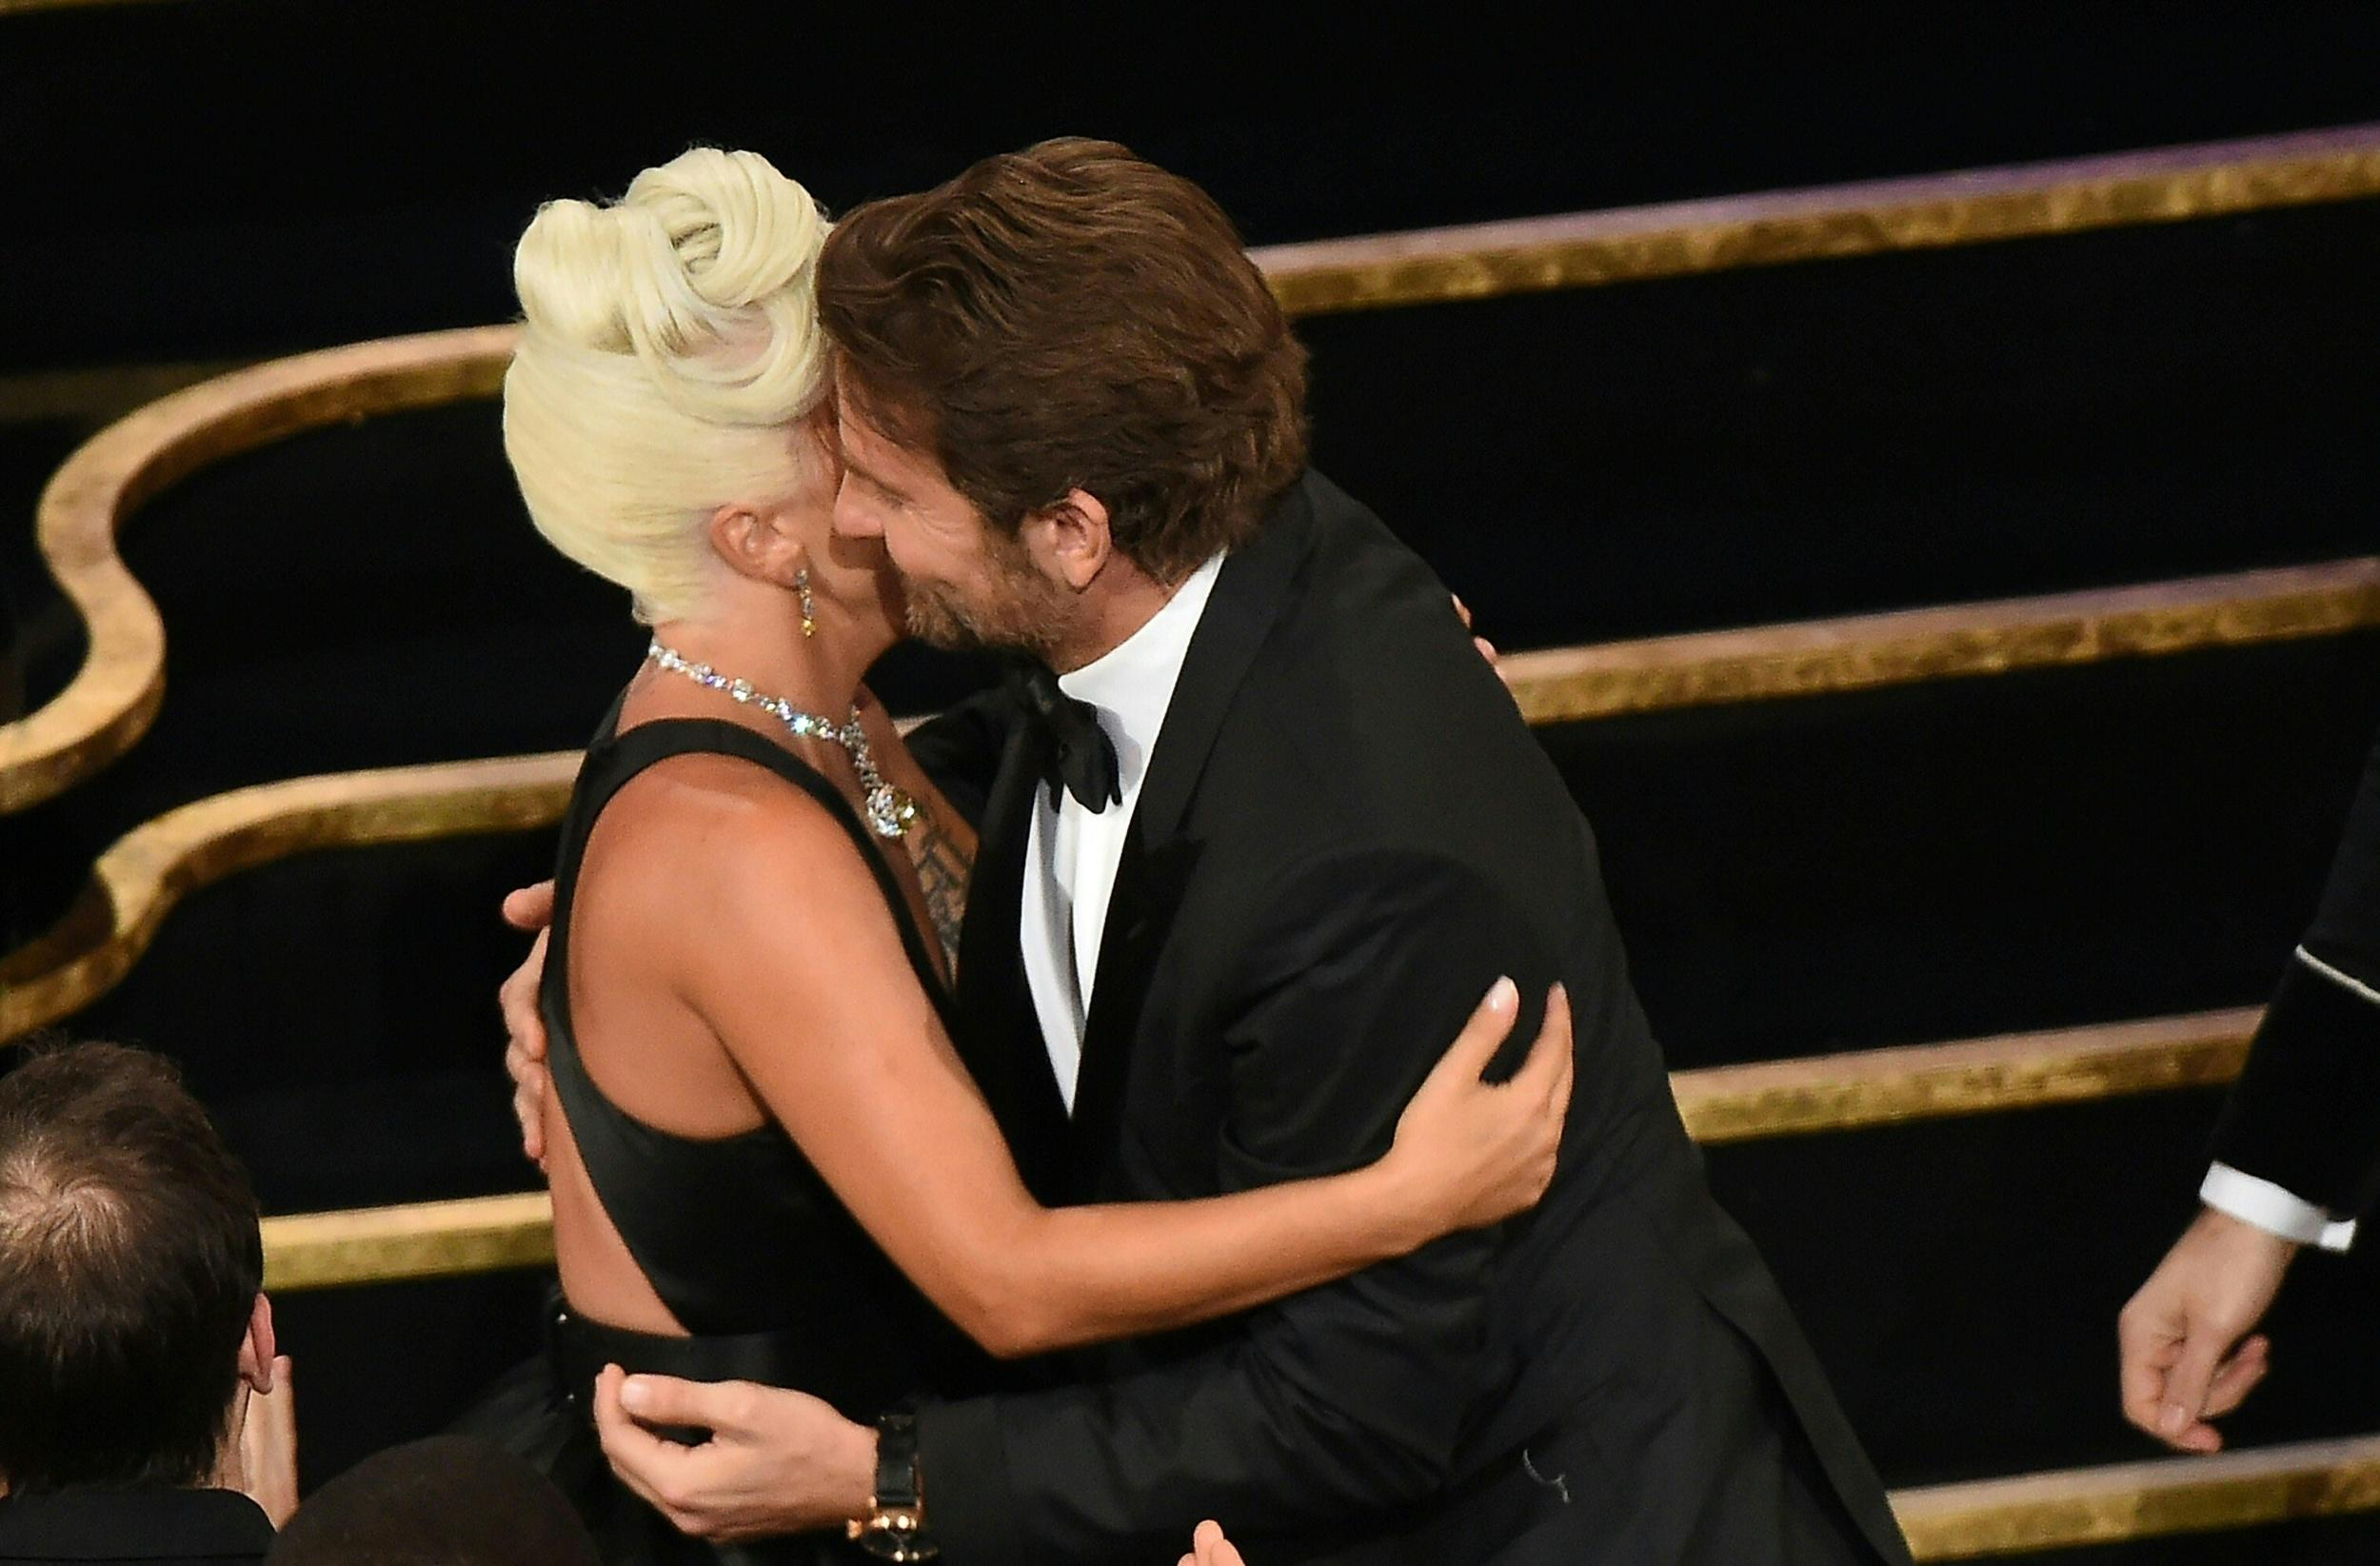 Best Original Song nominees for 'Shallow' from 'A Star is Born' Lady Gaga embraces actor Bradley Cooper (R) as she accepts the award for Best Original Song during the 91st Annual Academy Awards at the Dolby Theatre in Hollywood, California on February 24, 2019. (Photo by VALERIE MACON / AFP)        (Photo credit should read VALERIE MACON/AFP/Getty Images)